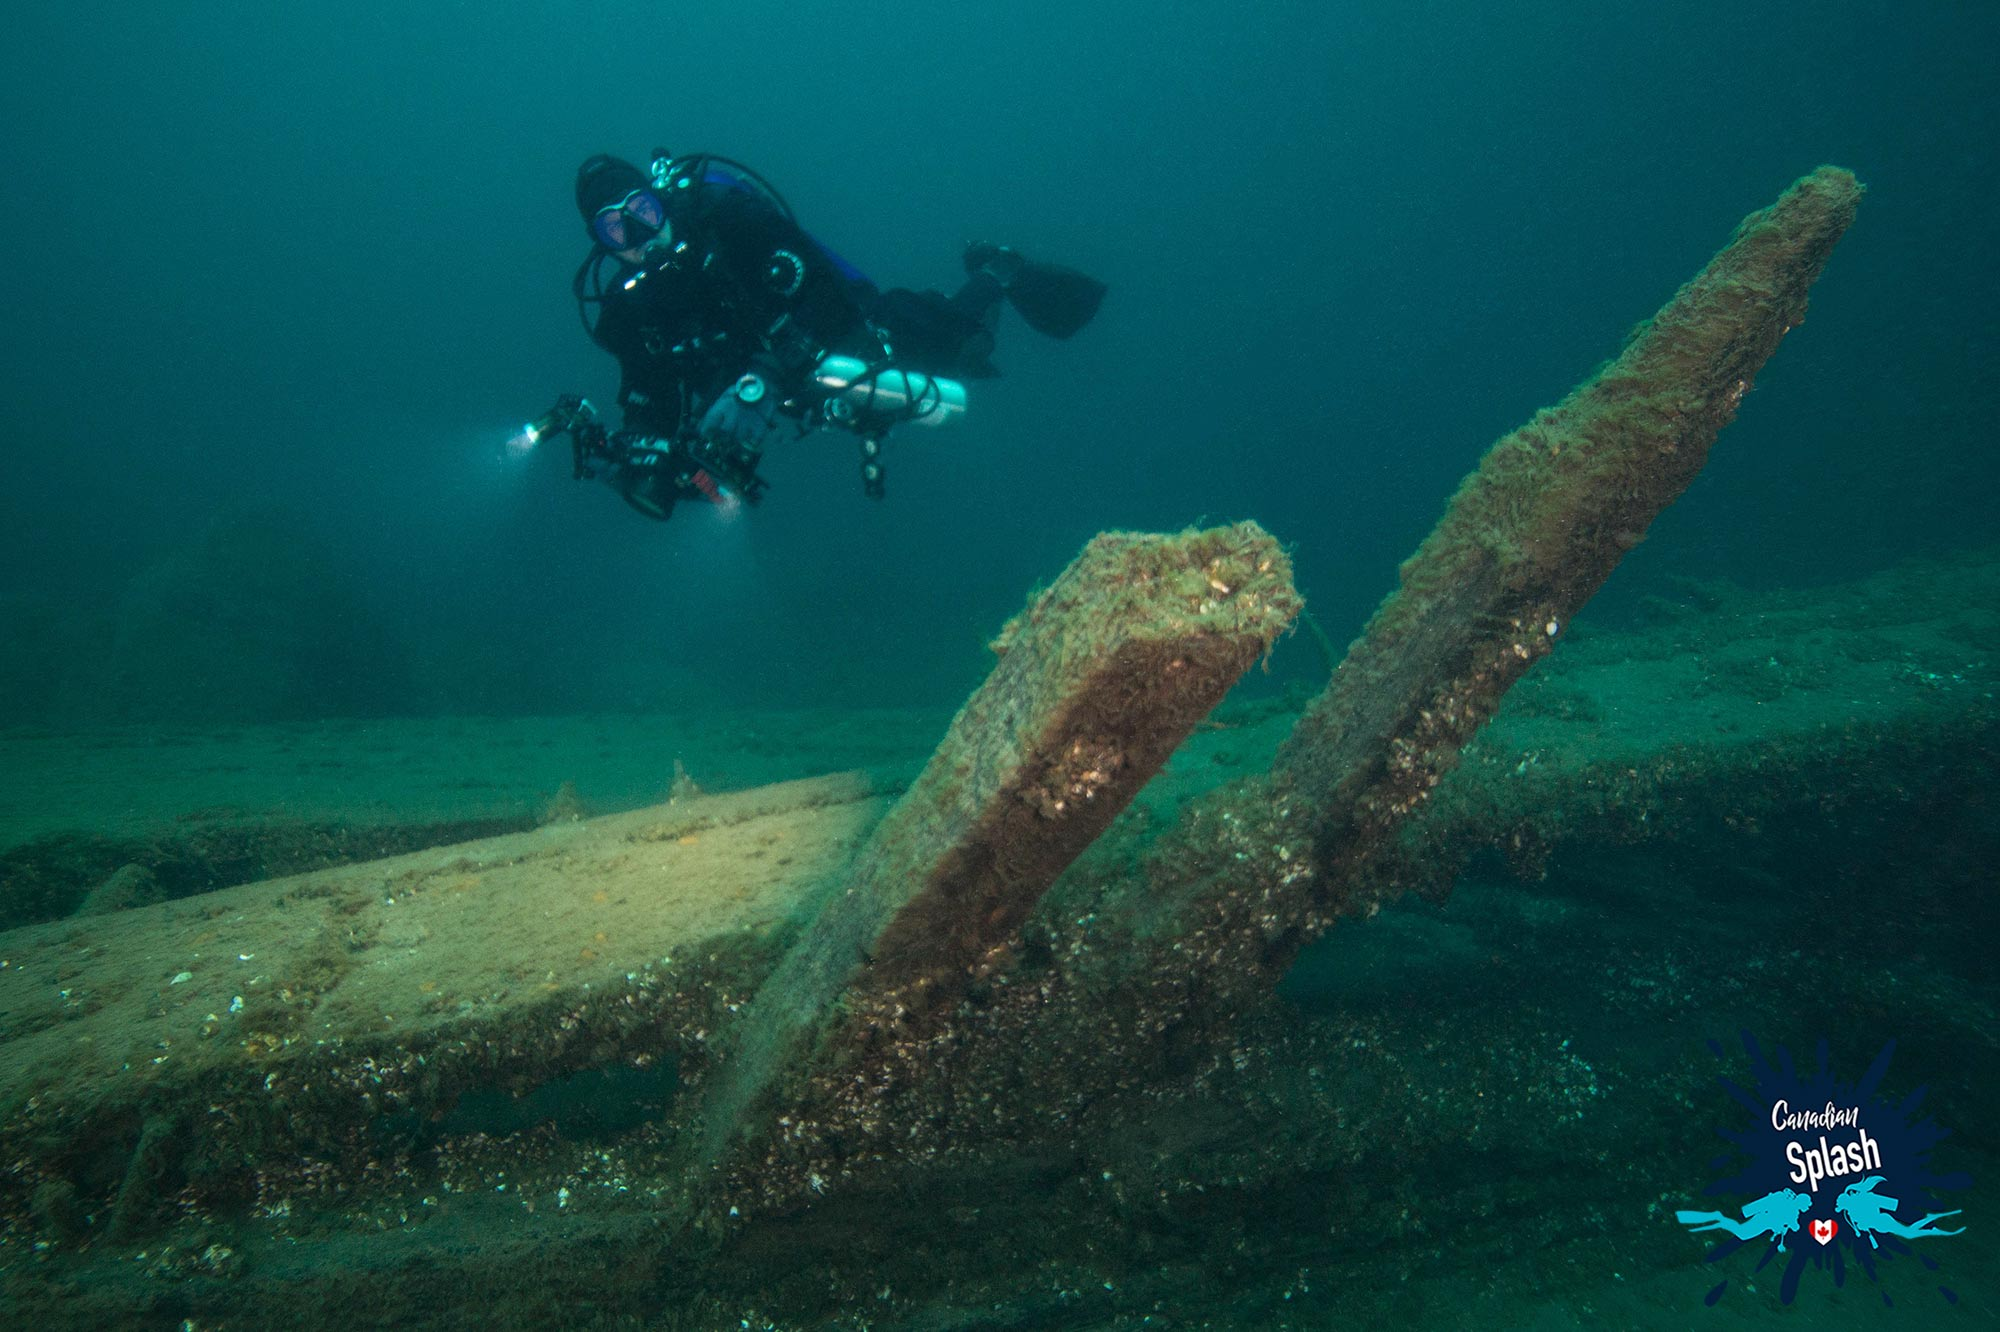 Joey Floating Above The Philo Scoville Wreck In Tobermory, Ontario, Scuba Diving Canada